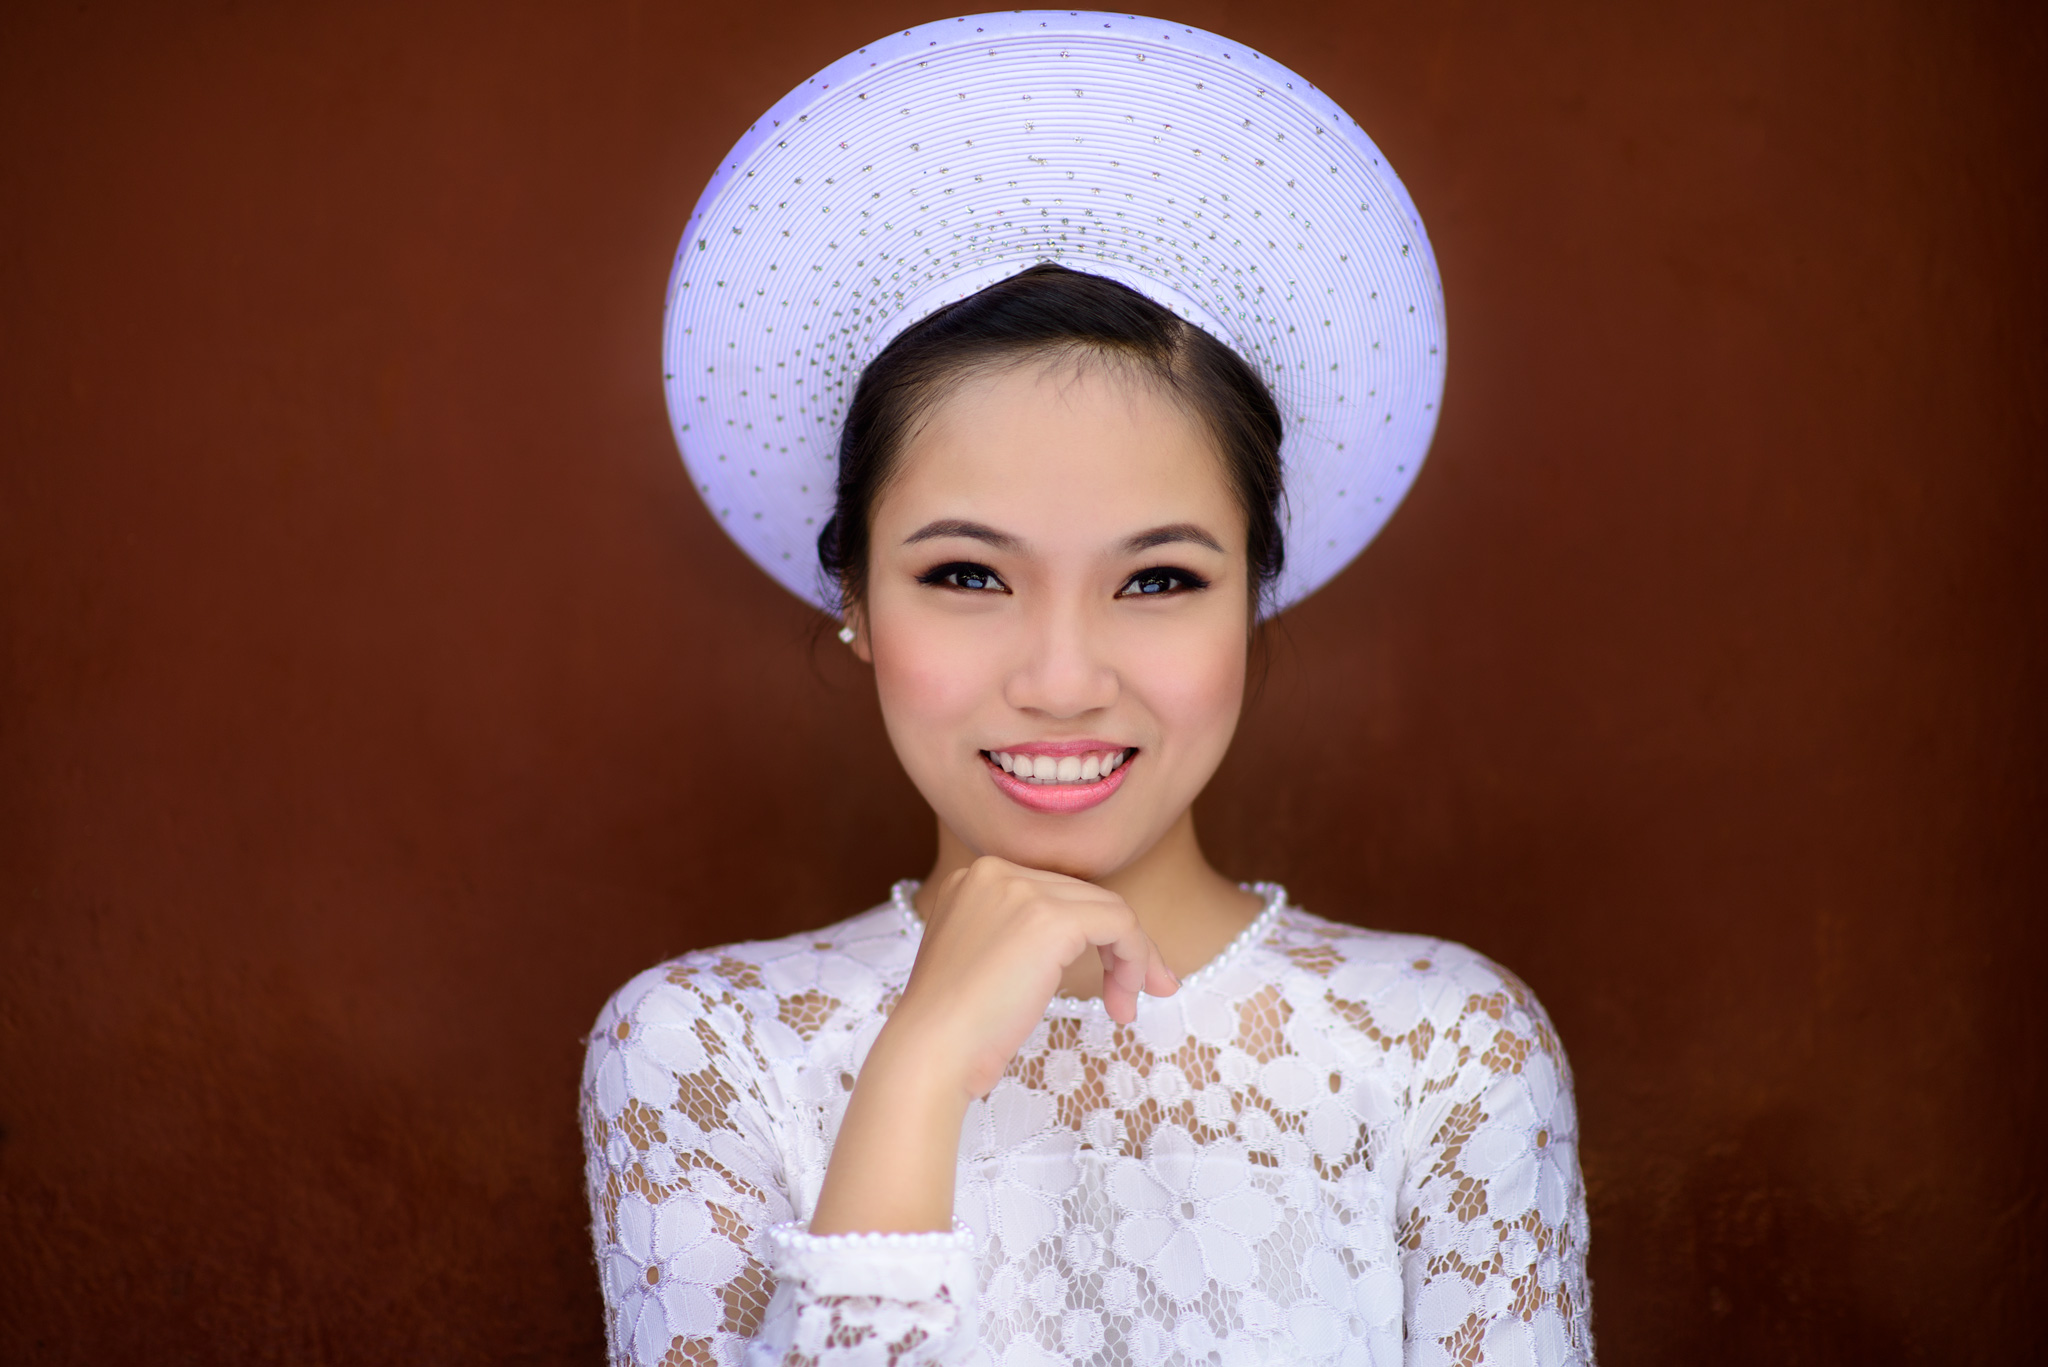 Vietnamese Model Photography Workshop In Saigon (HCMC), Vietnam